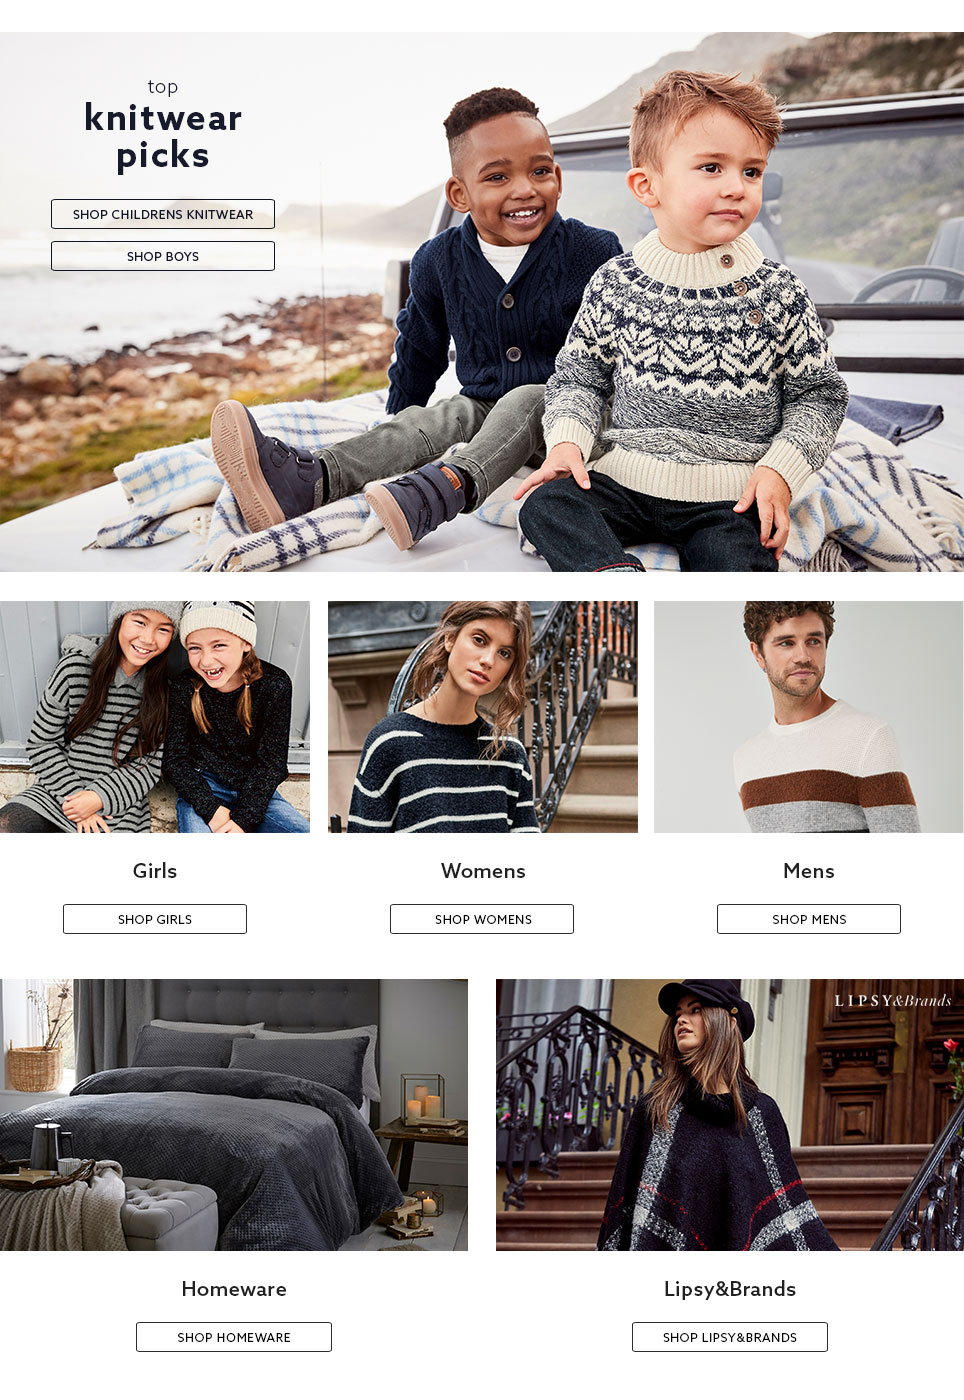 Next Switzerland Shop Online For Fashion Clothing - What does an invoice look like online clothing stores for men